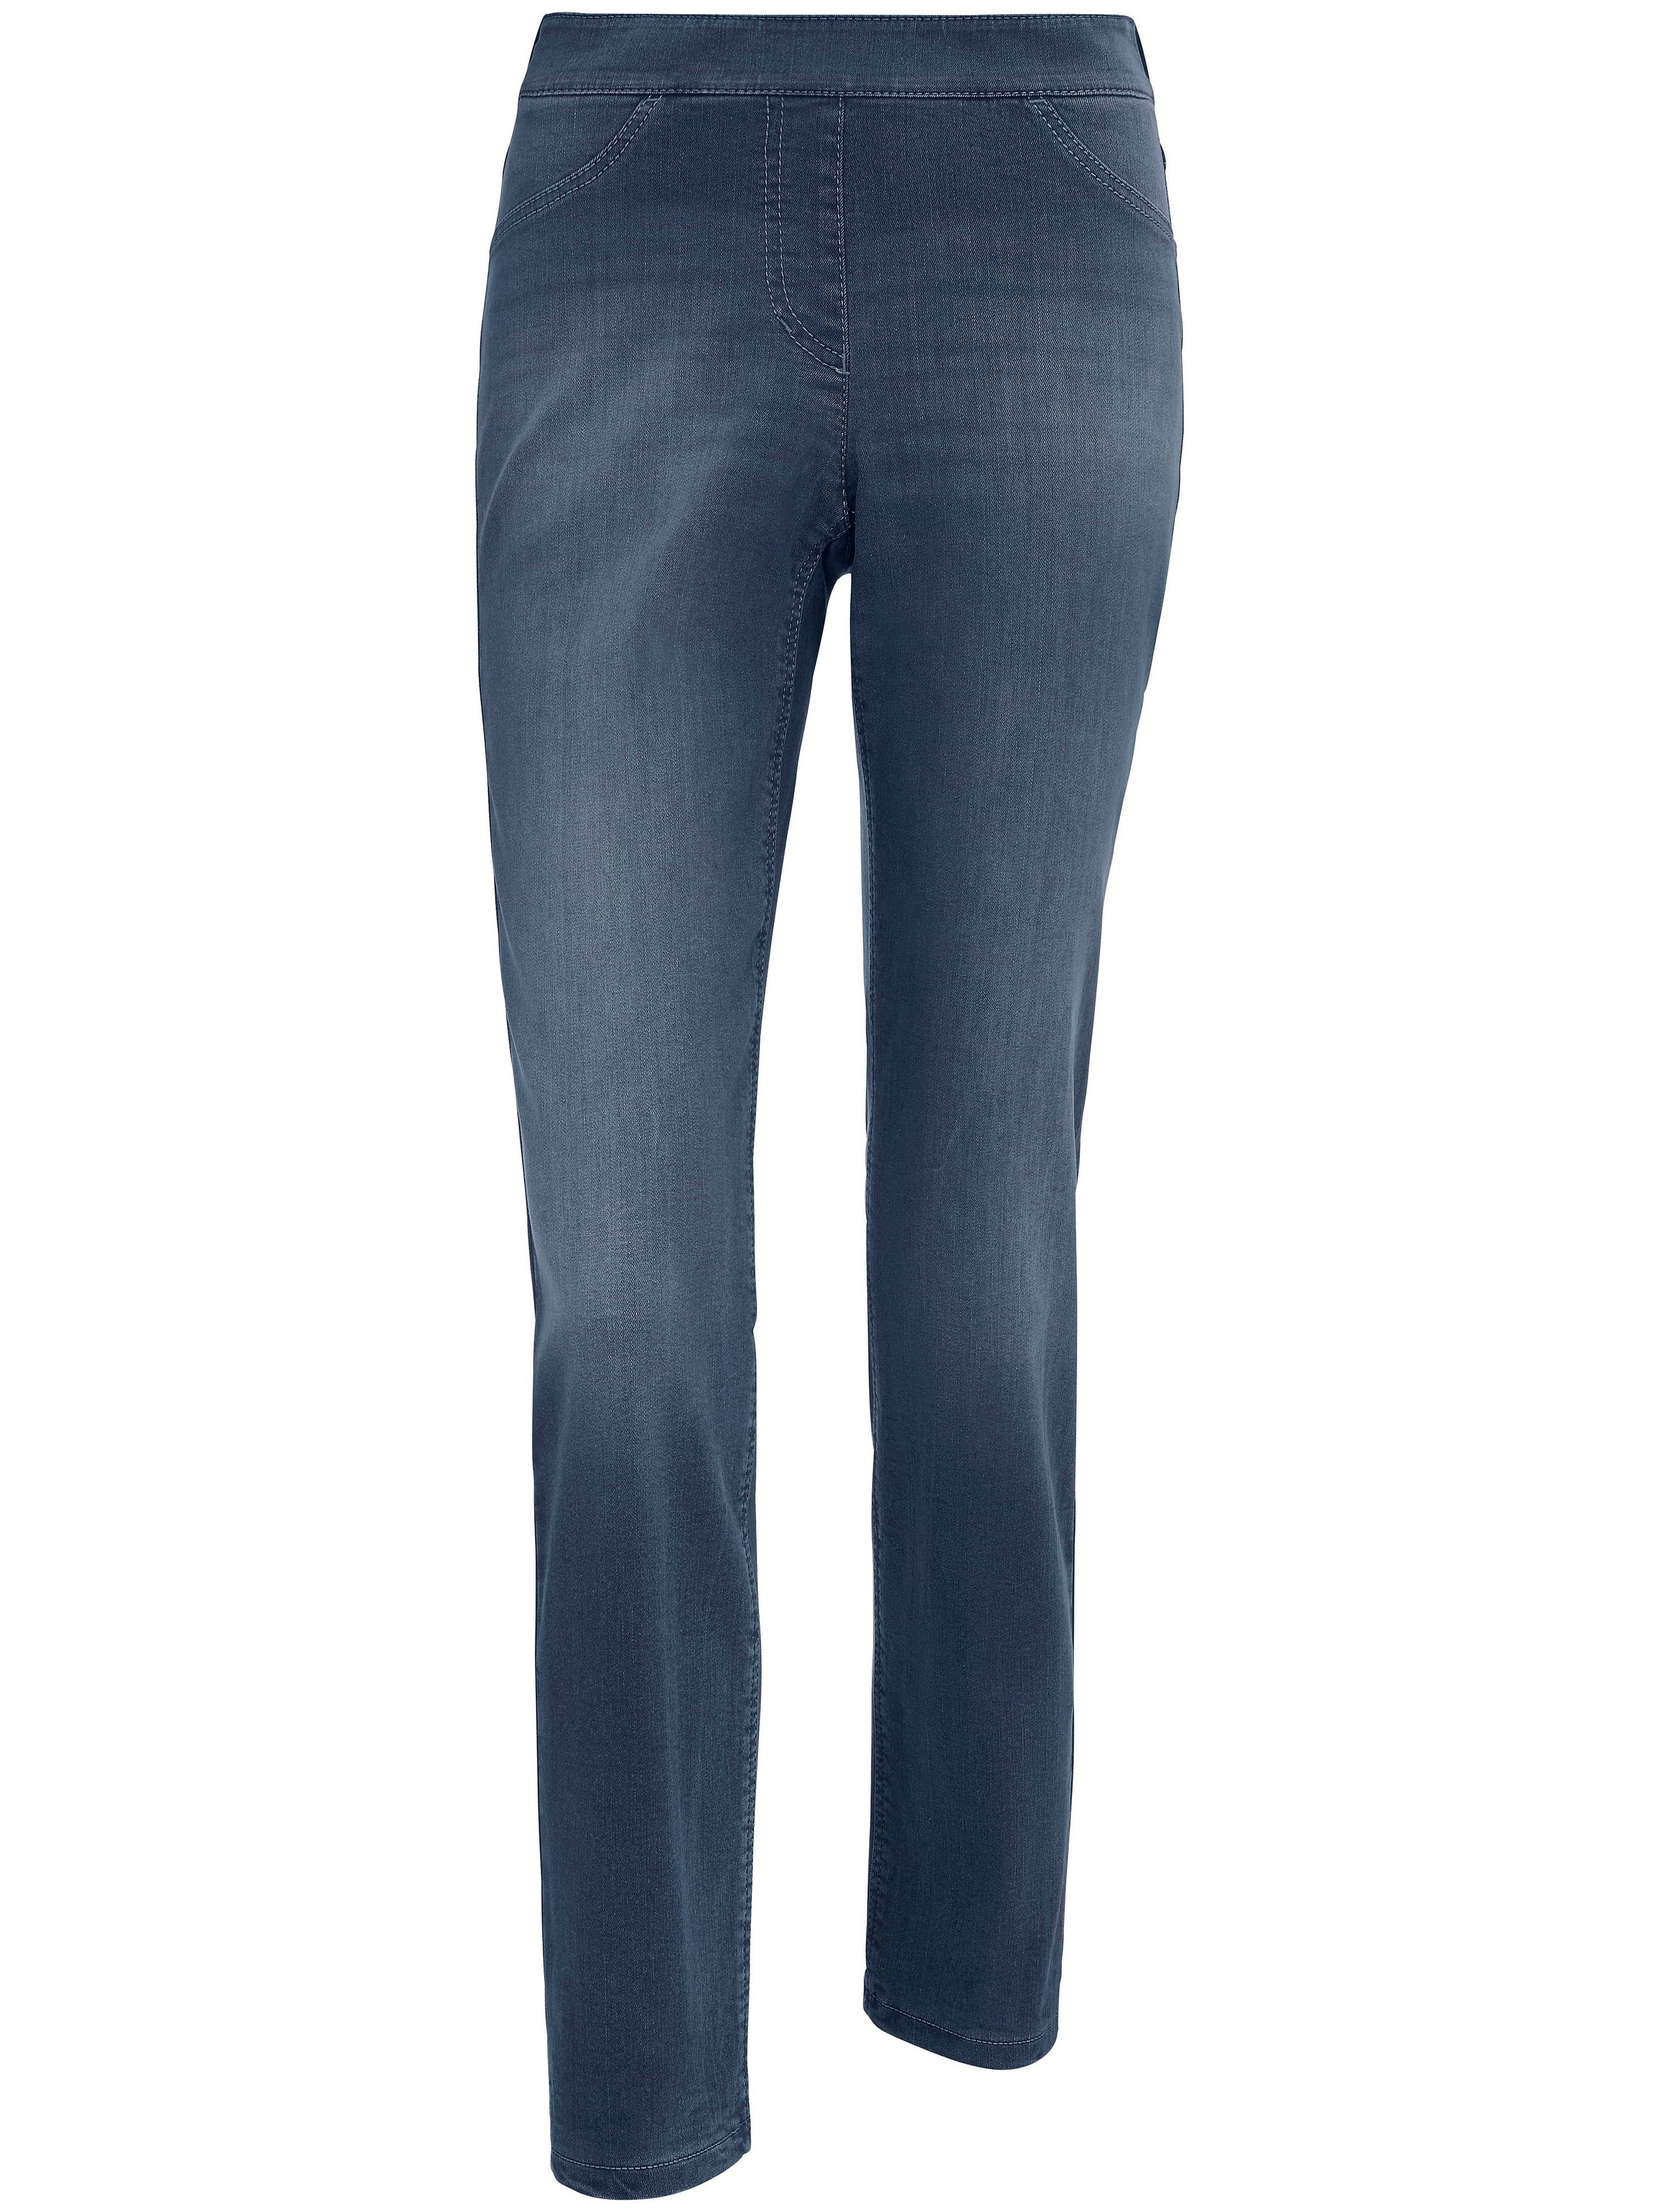 Ankellange jeans Fra Gerry Weber Edition denim